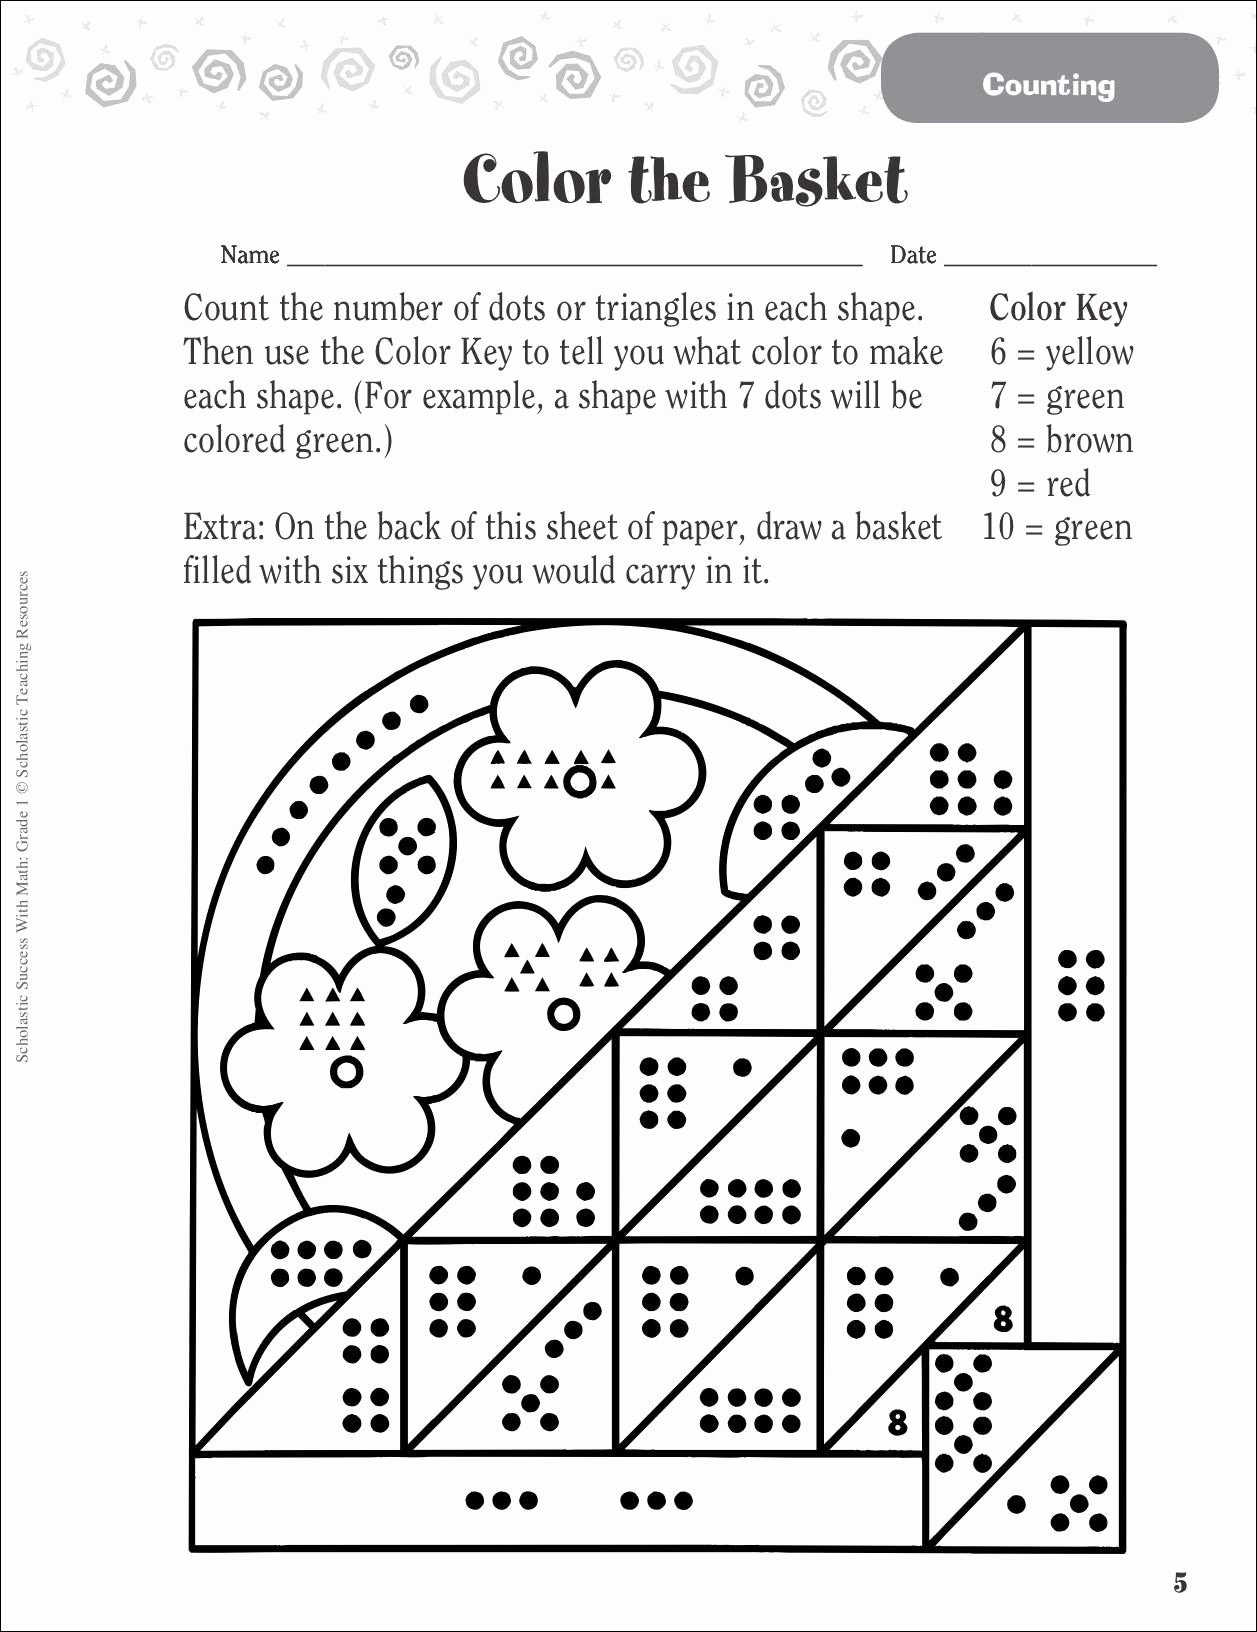 Multiplication Worksheets Creator New Free Tracing Worksheet Generator Page 2 Handwriting